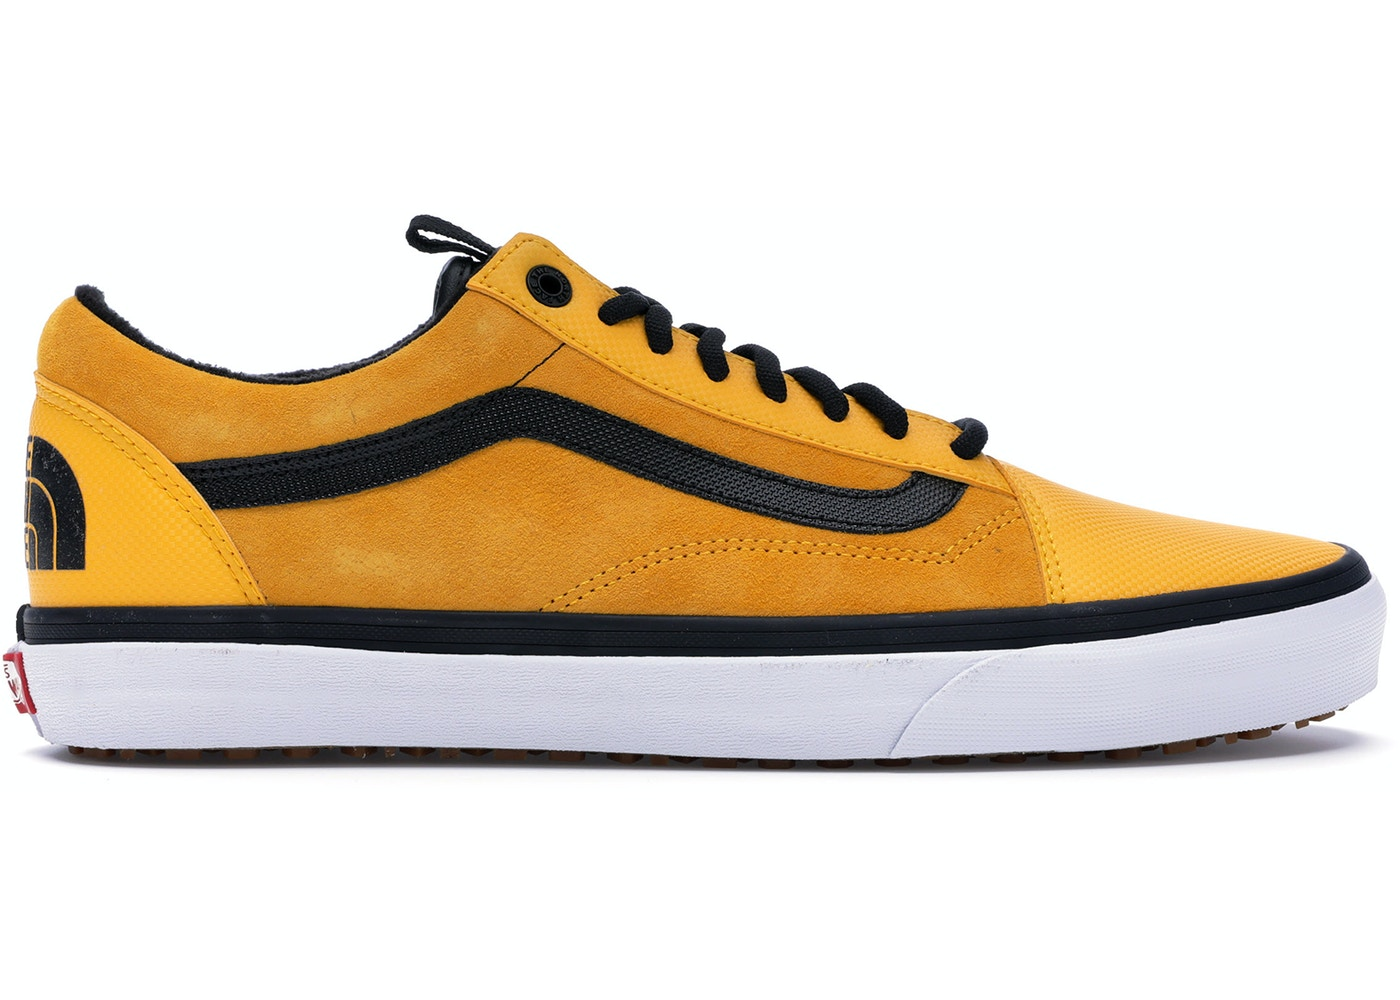 5a98857bde4 Vans Old Skool MTE DX The North Face Yellow - VA348GQWI